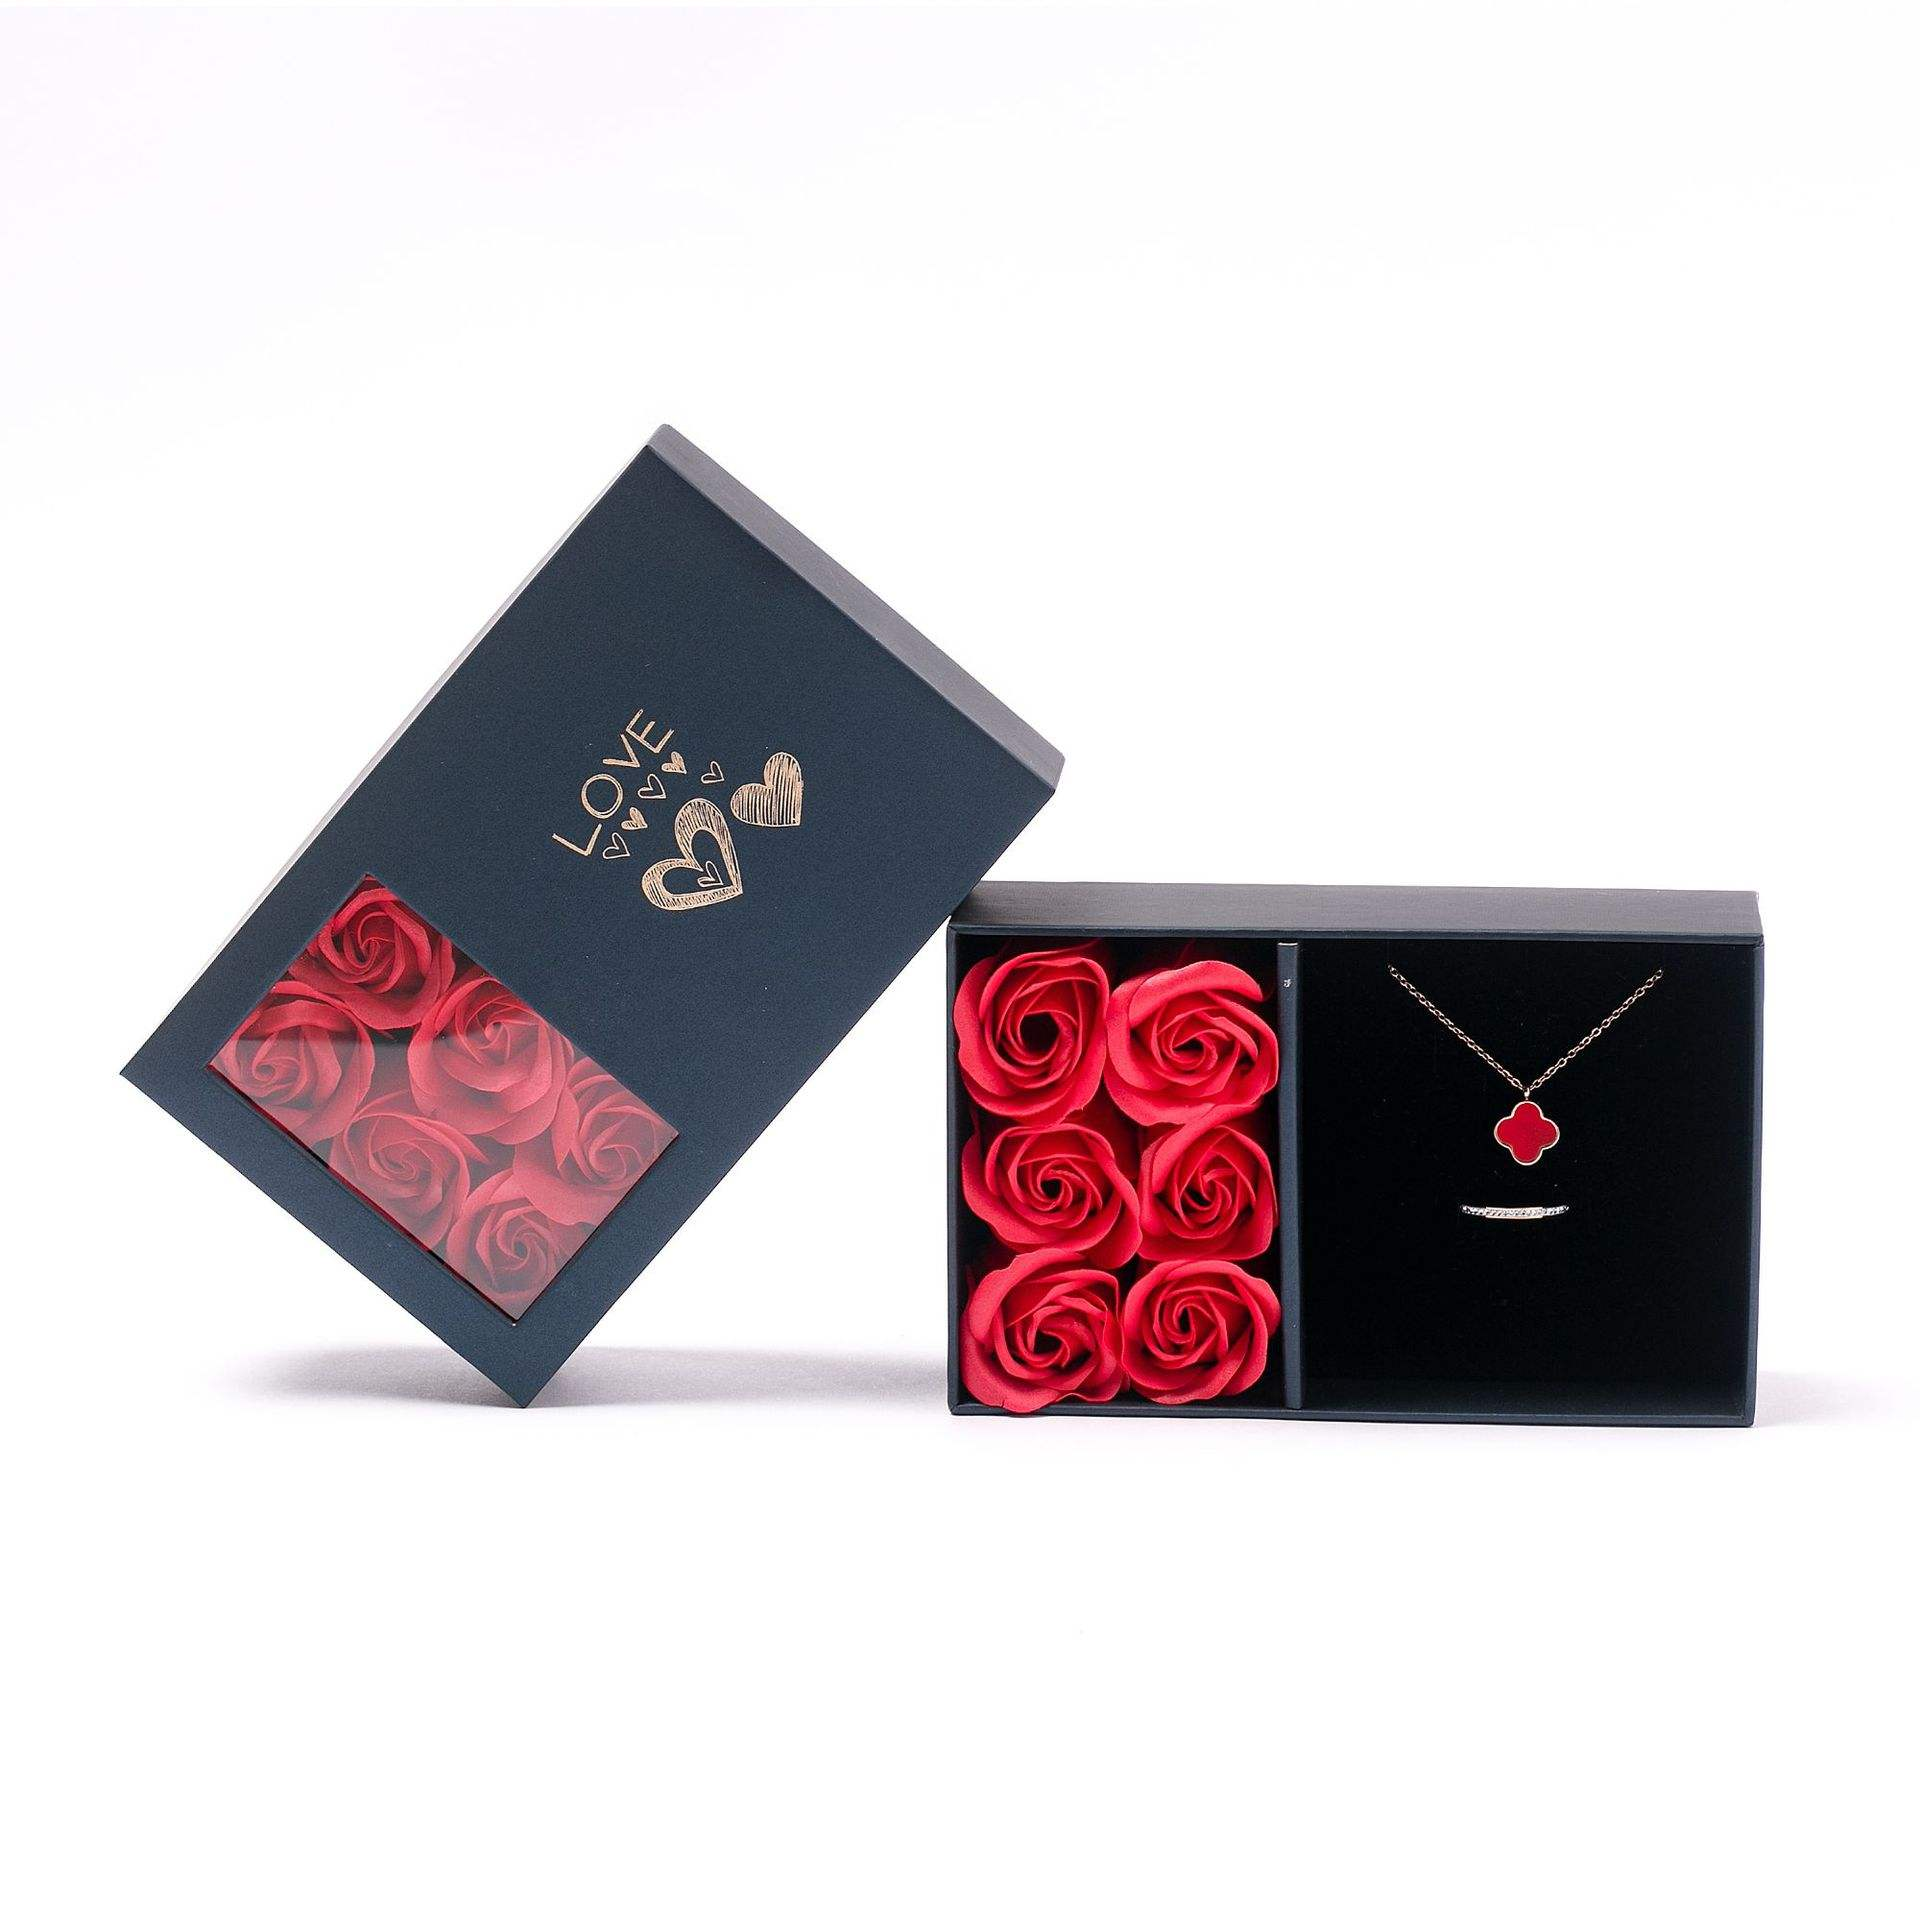 Six eternal flower gift box manufacturers spot romantic Valentine's Day jewelry box black square festival flower box